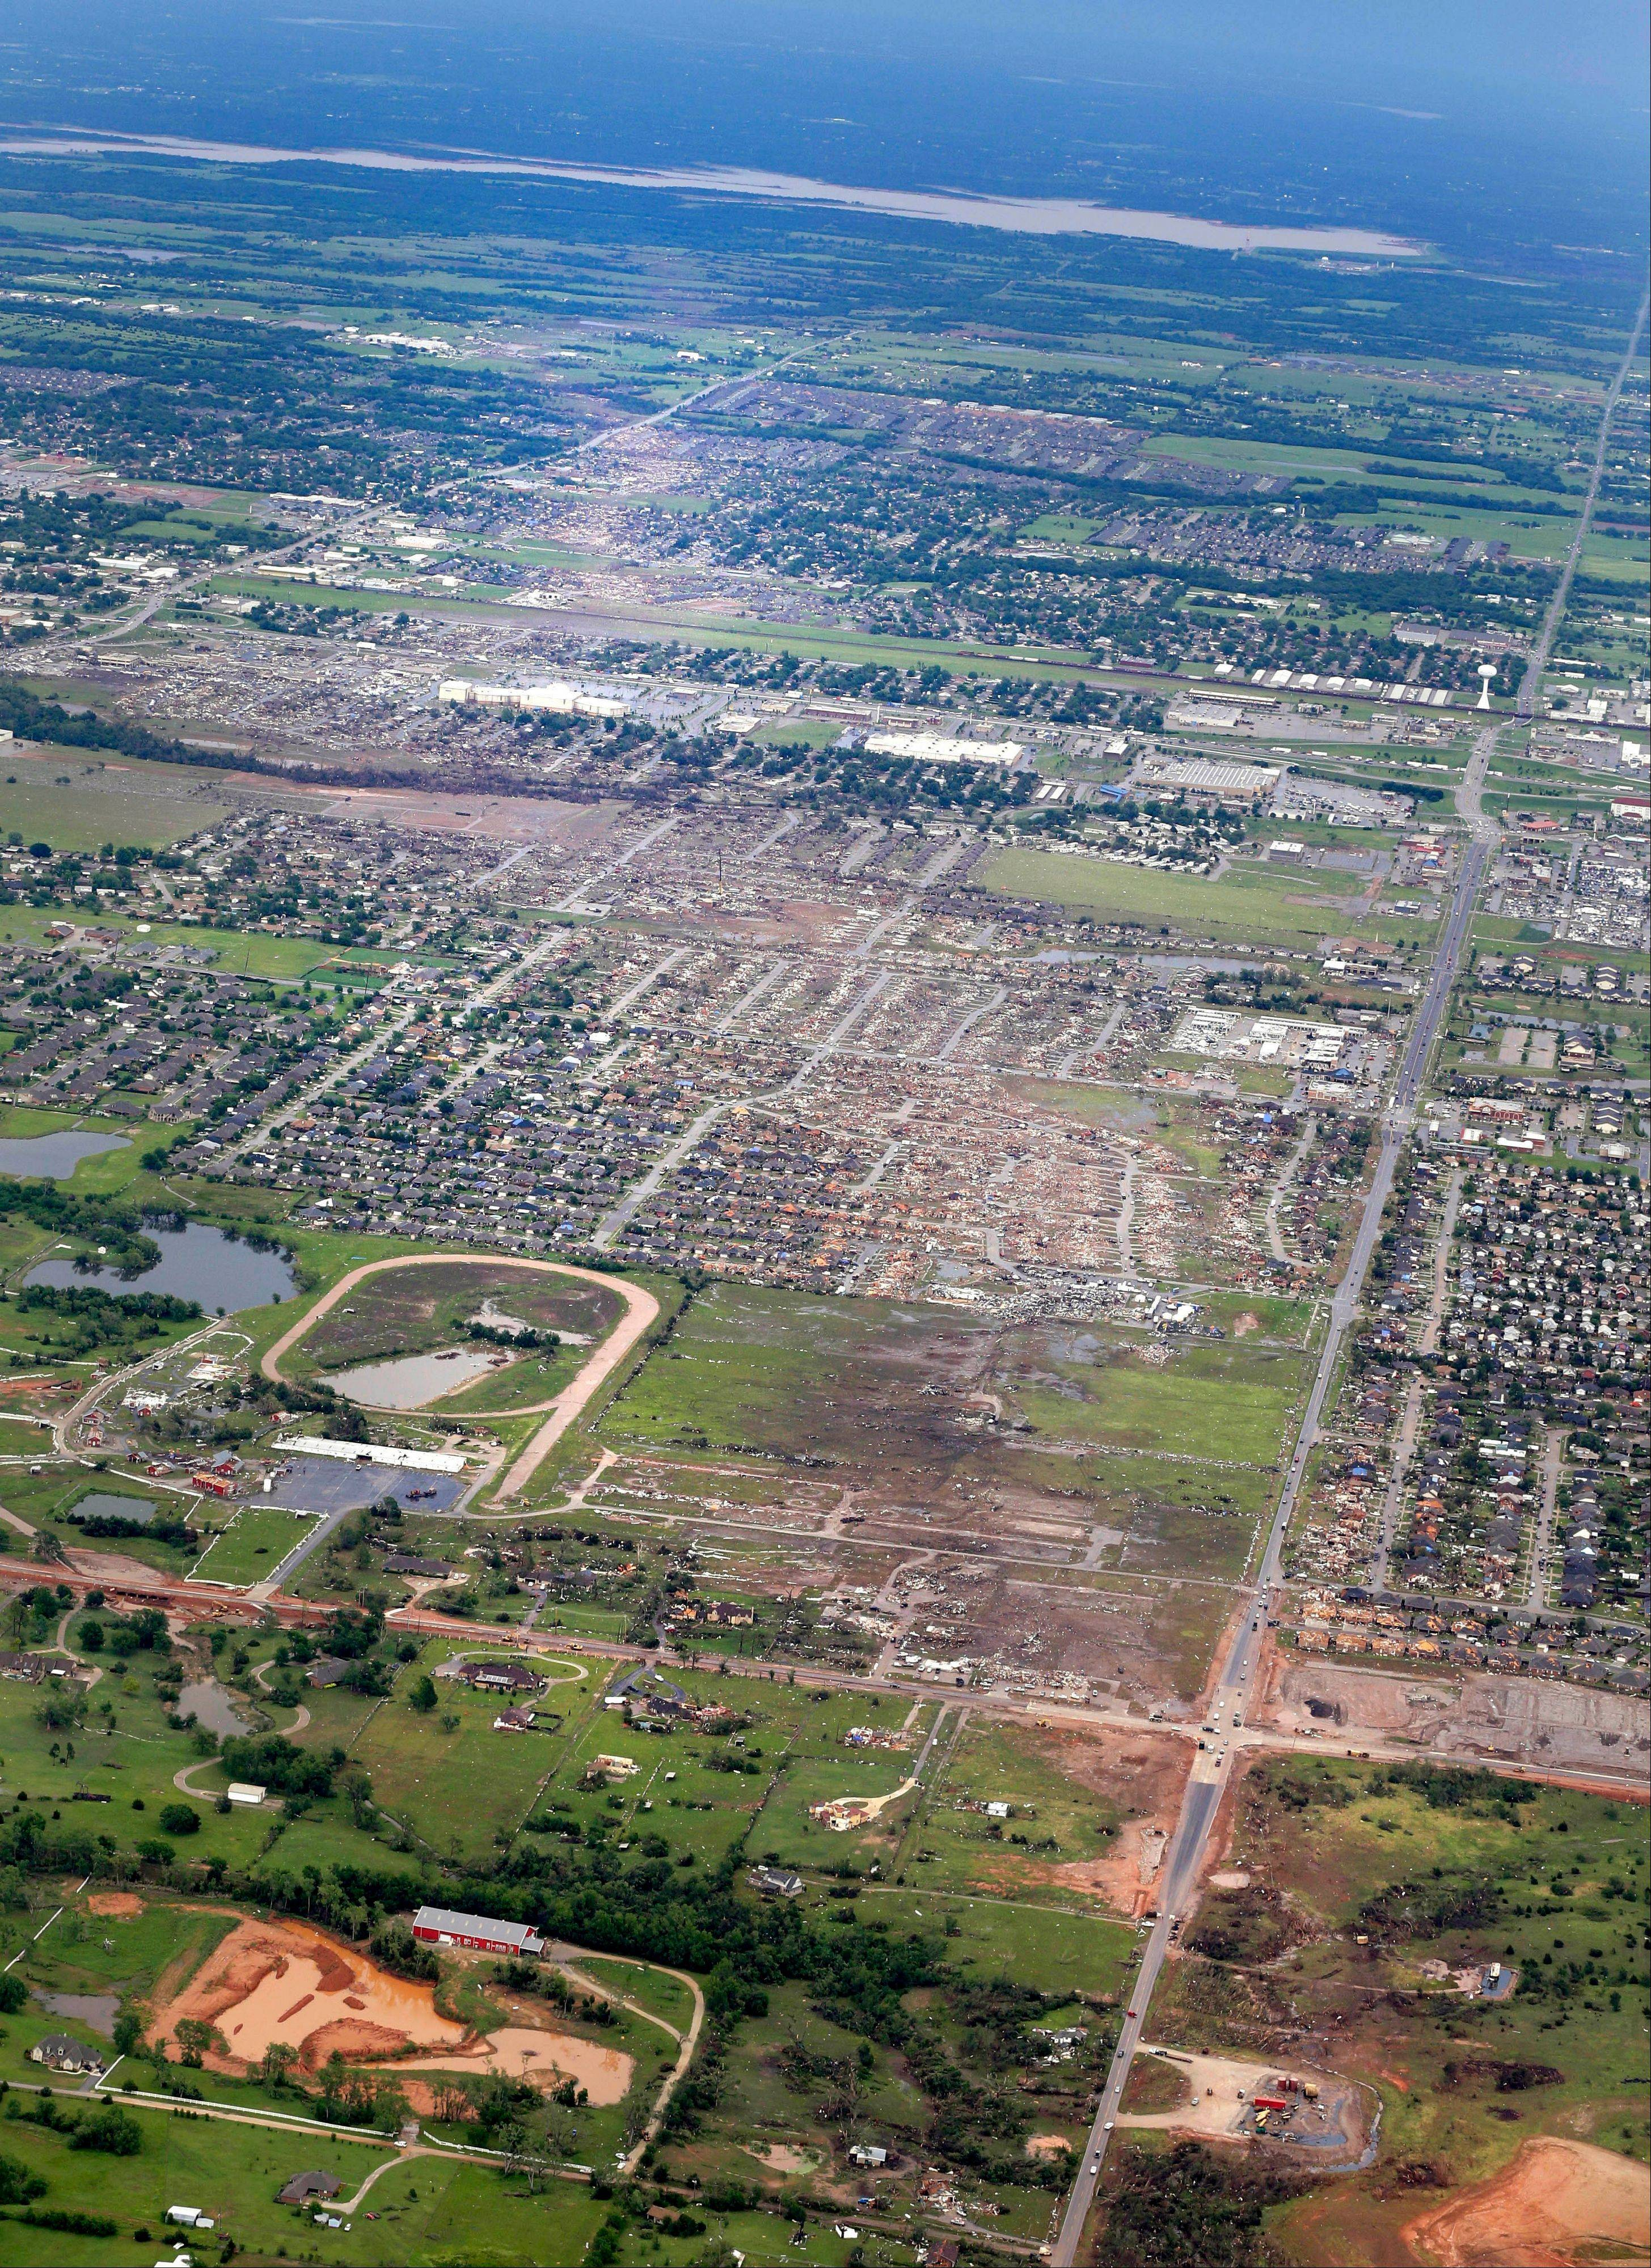 ASSOCIATED PRESSThis aerial photo from a day afer the May 20 tornado shows the remains of houses in Moore, Okla. The Oklahoma City area has seen two of the extremely rare EF5 tornadoes in only 11 days. The tornado that hit El Reno had a record-breaking width of 2.6 miles. The one in Moore, a city about 25 miles away from El Reno, killed 24 people and caused widespread damage.